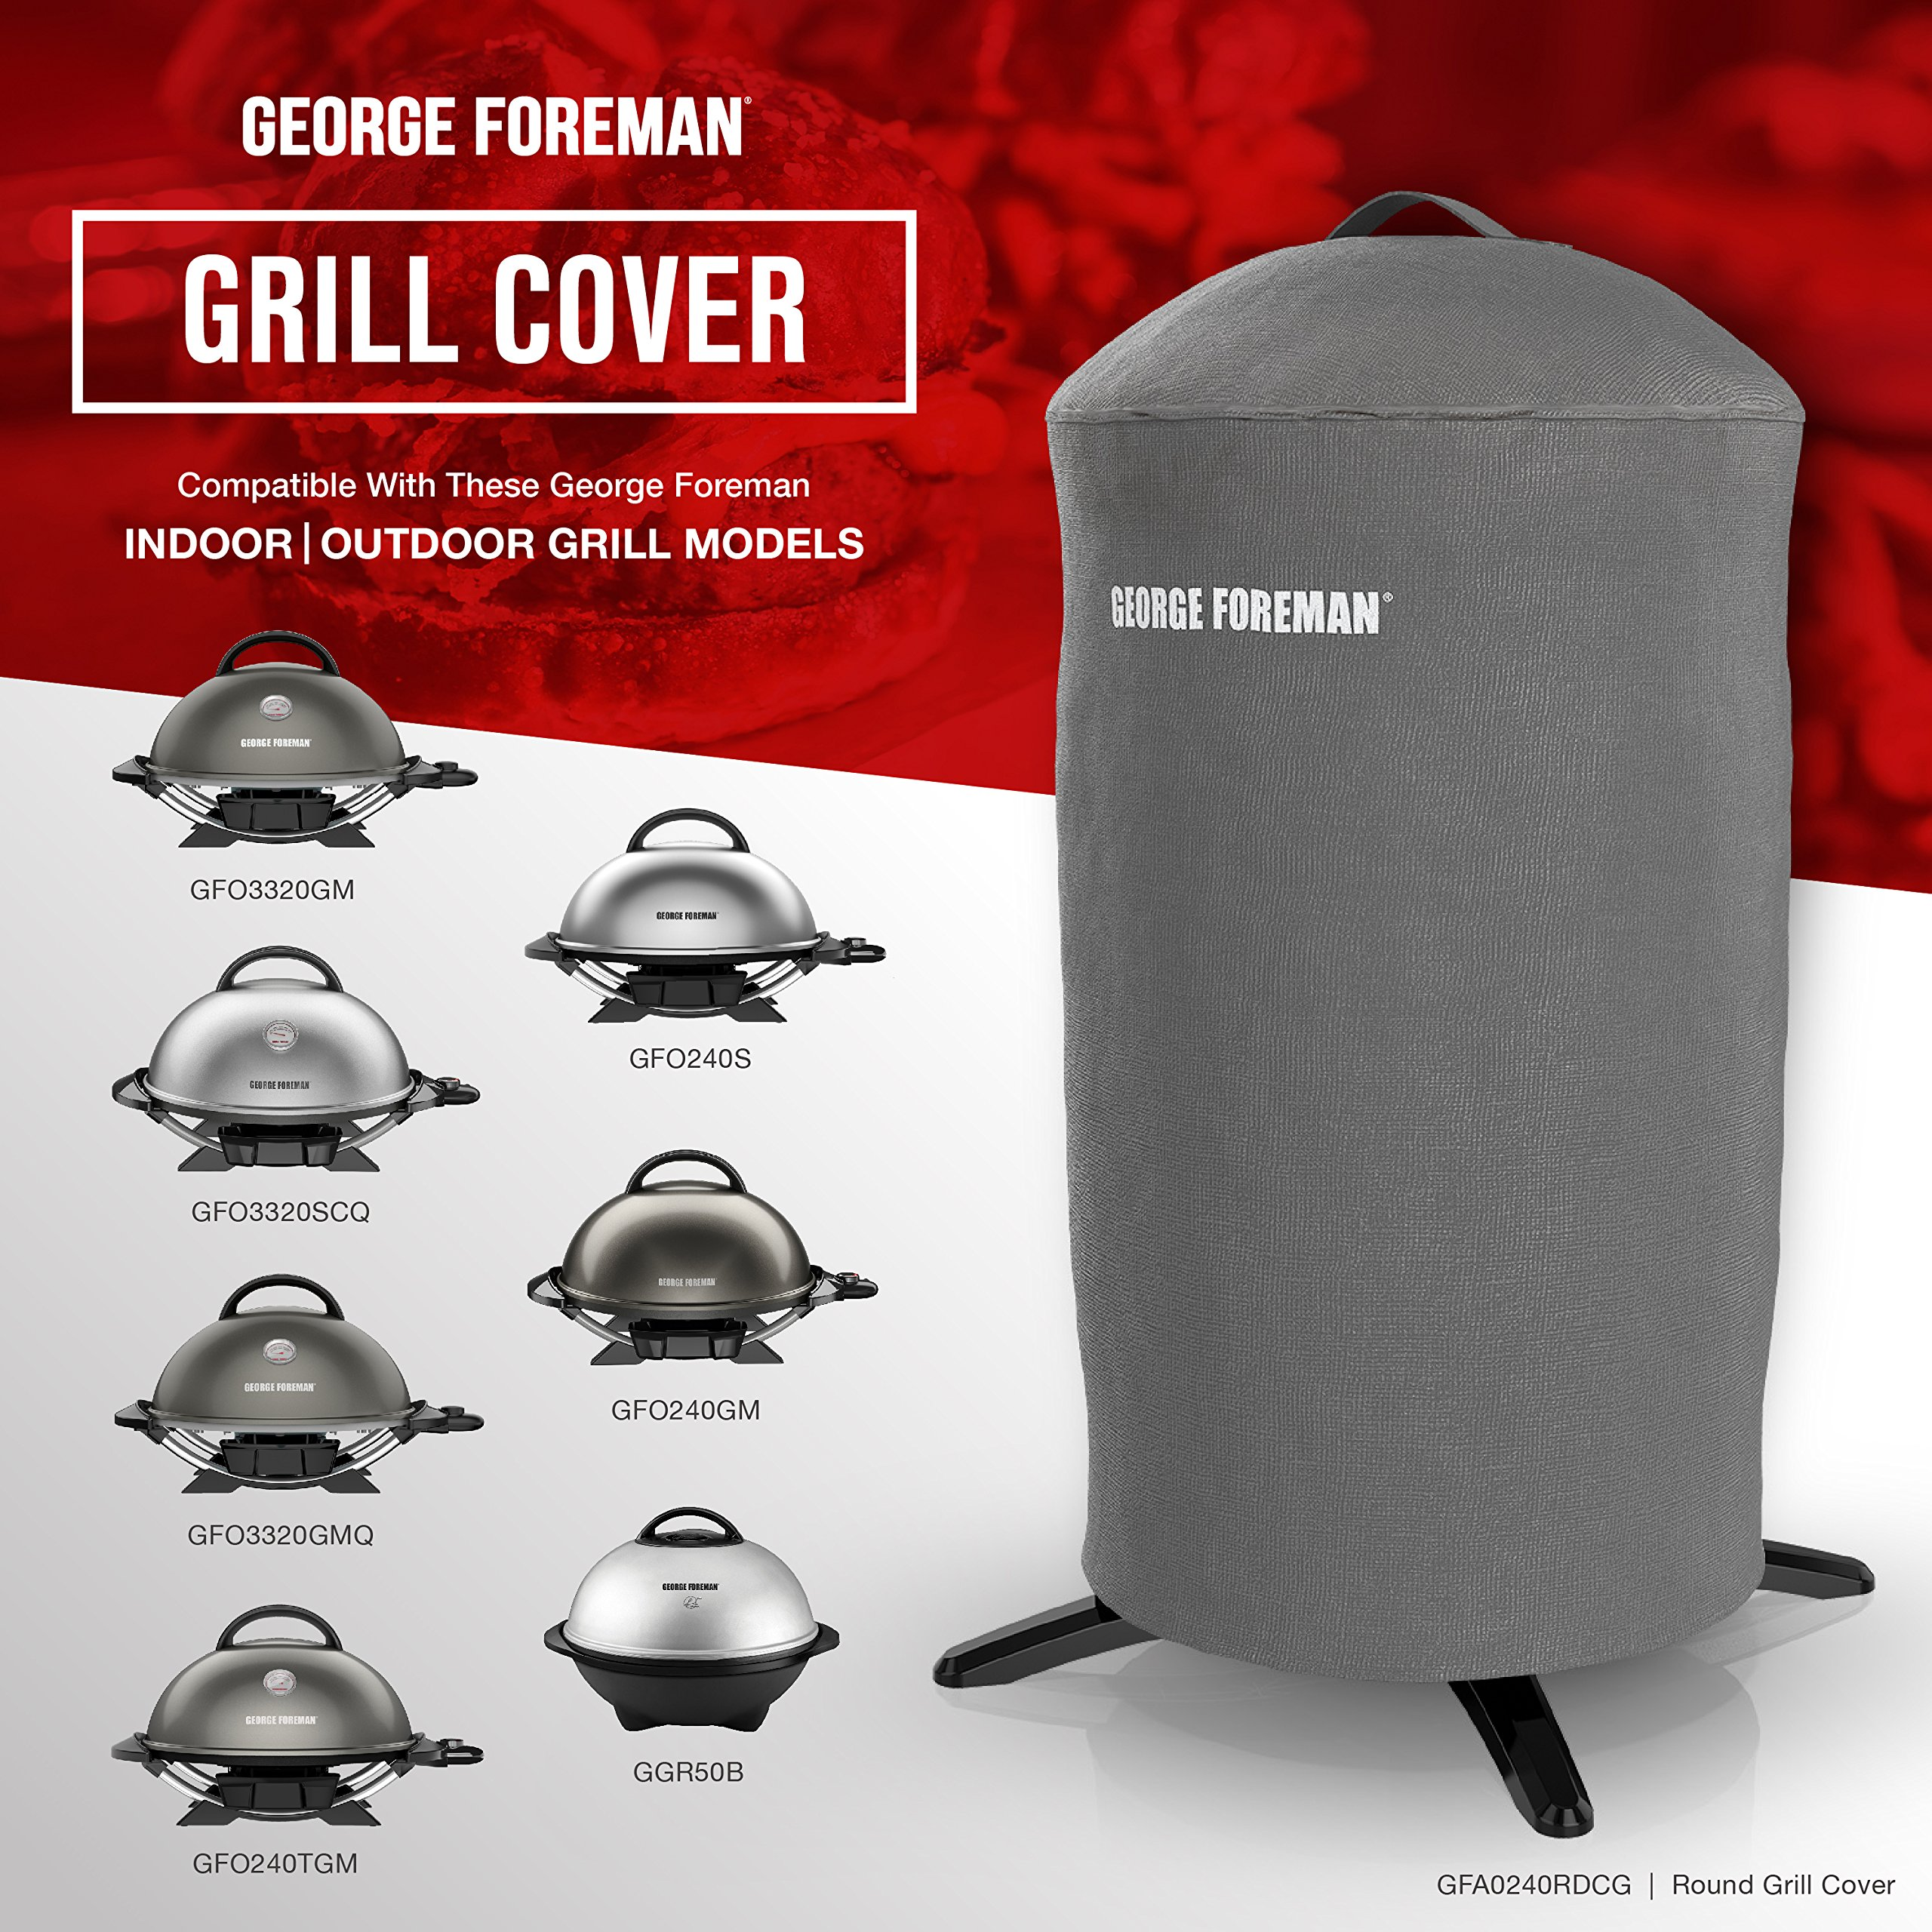 George Foreman GFA0240RDCG Round Grill Cover, Gray by George Foreman (Image #7)